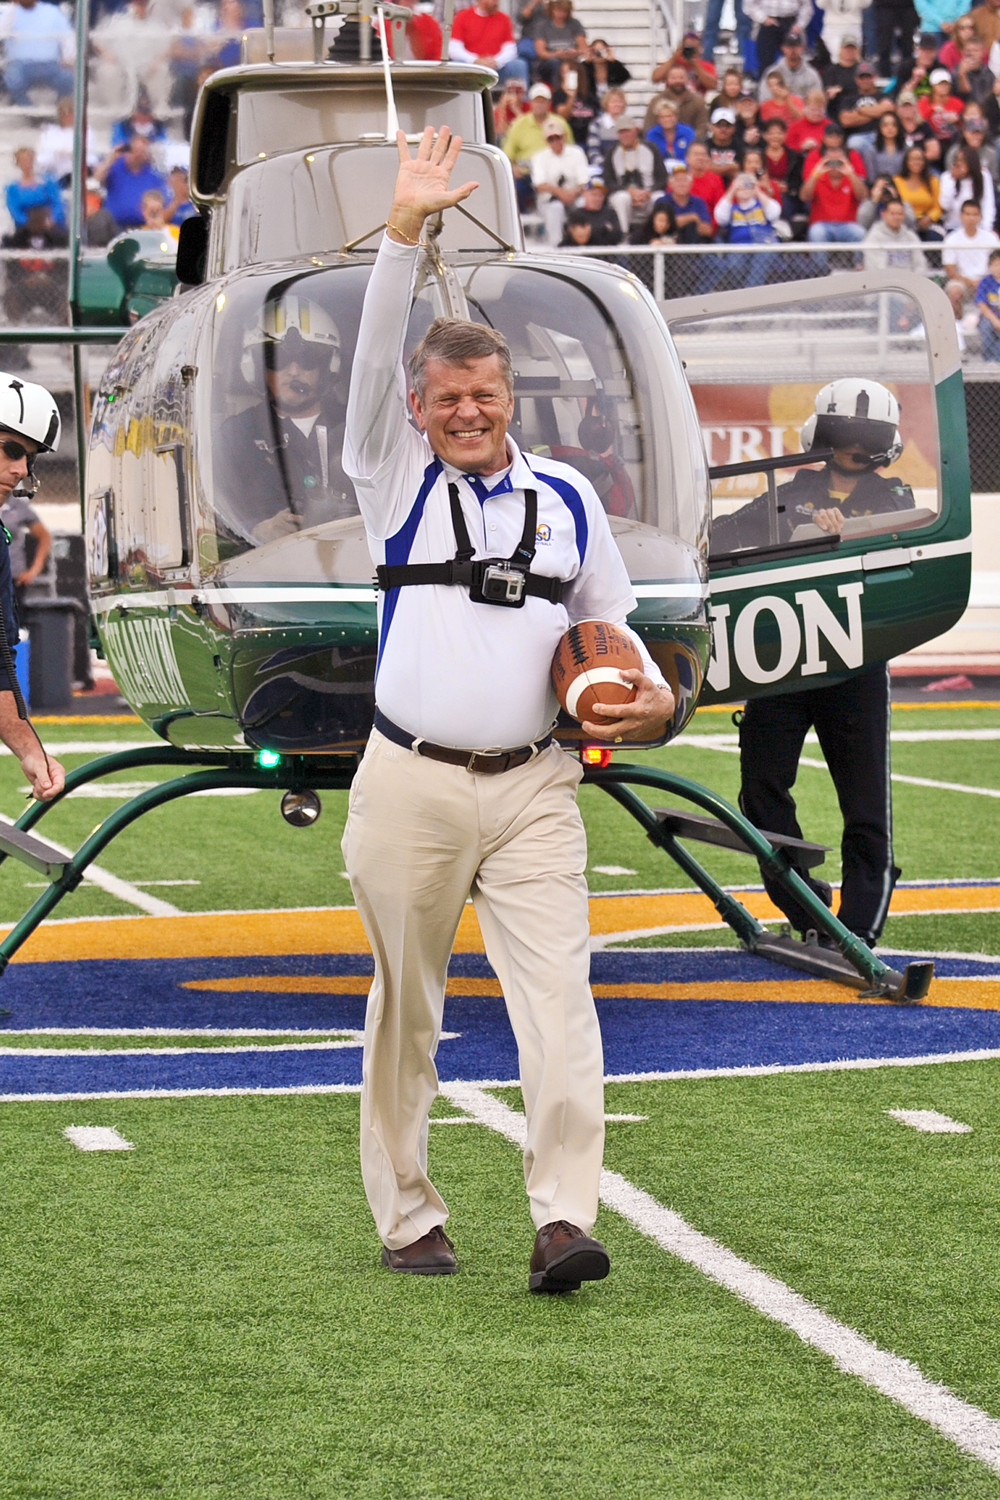 Shannon AirMed 1 flew in Fred Key with the game ball at the First Home Game at 1st Community Field at LeGrand Stadium.